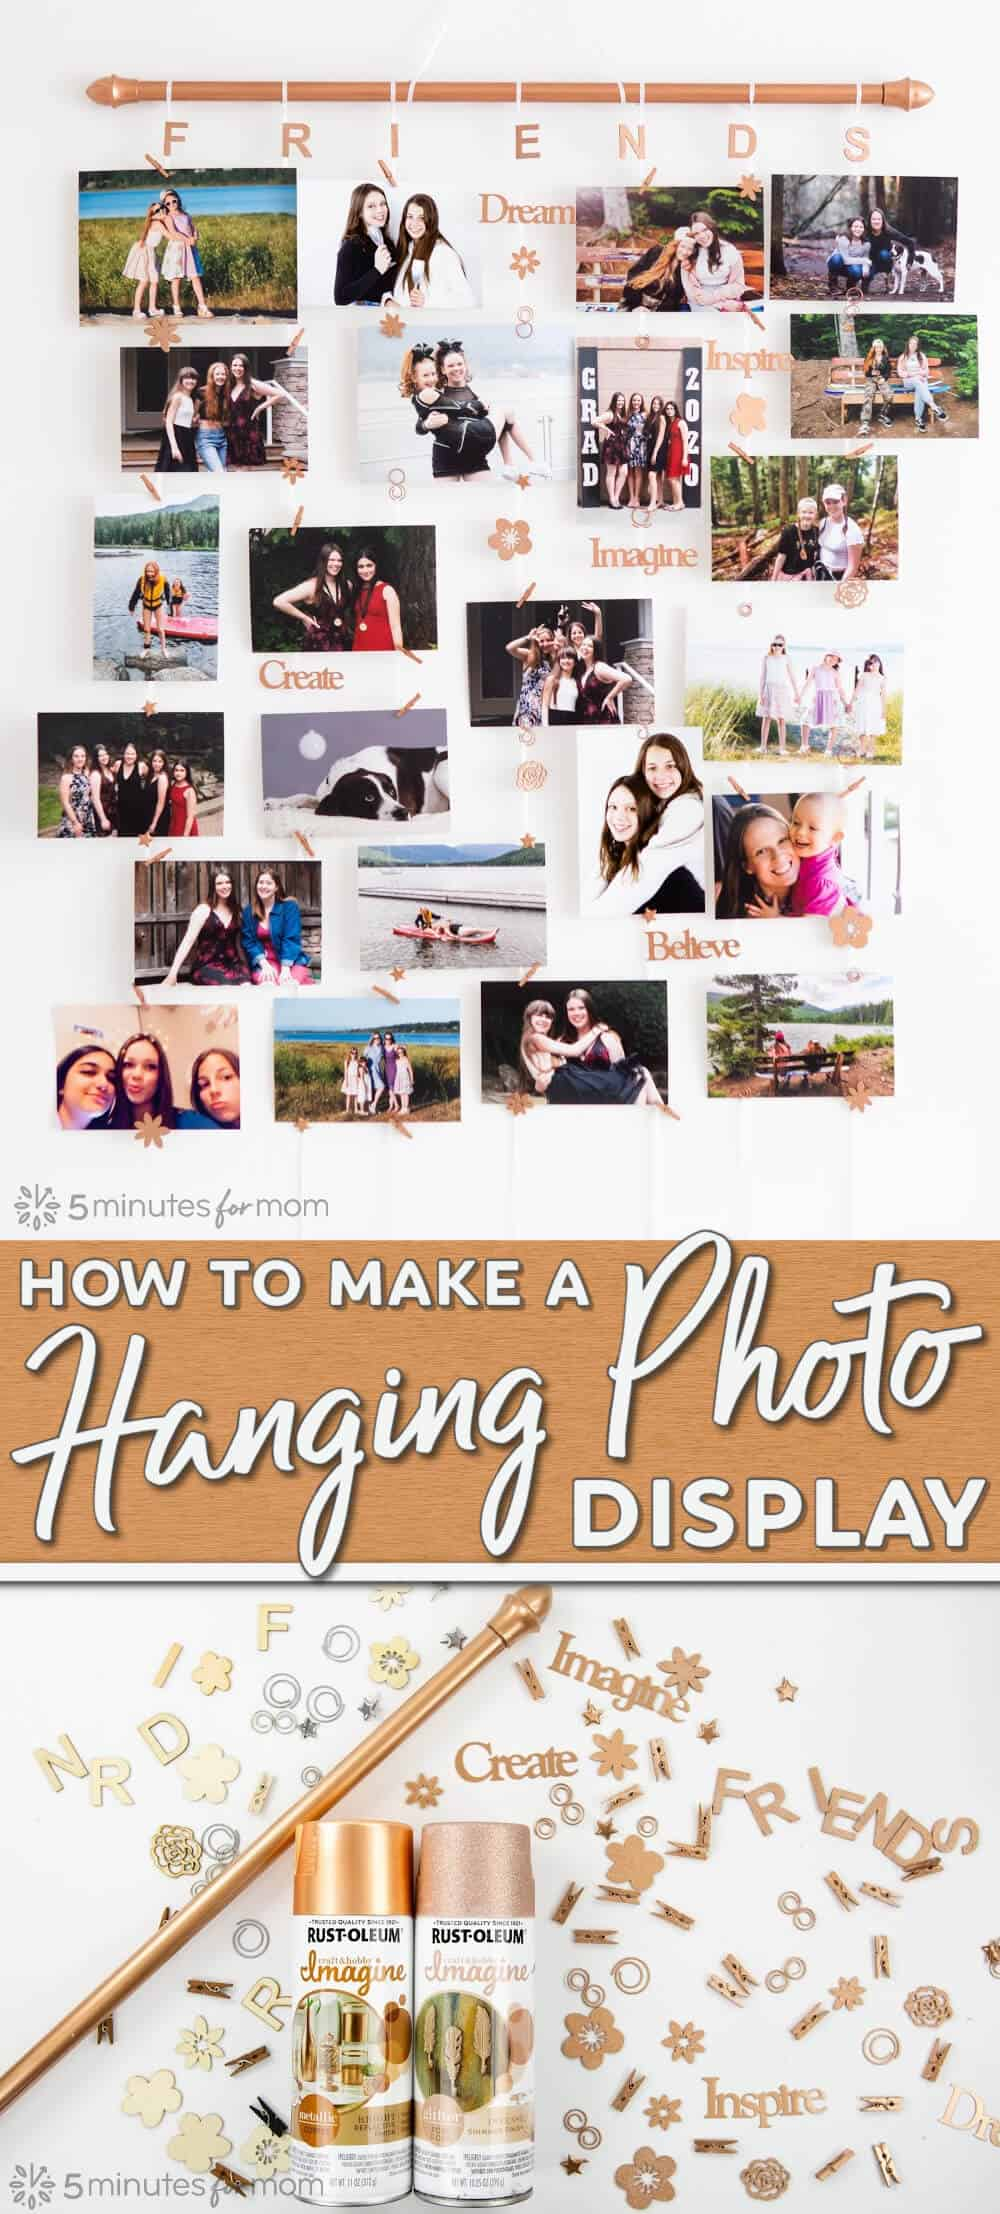 DIY Hanging Photo Display Tutorial